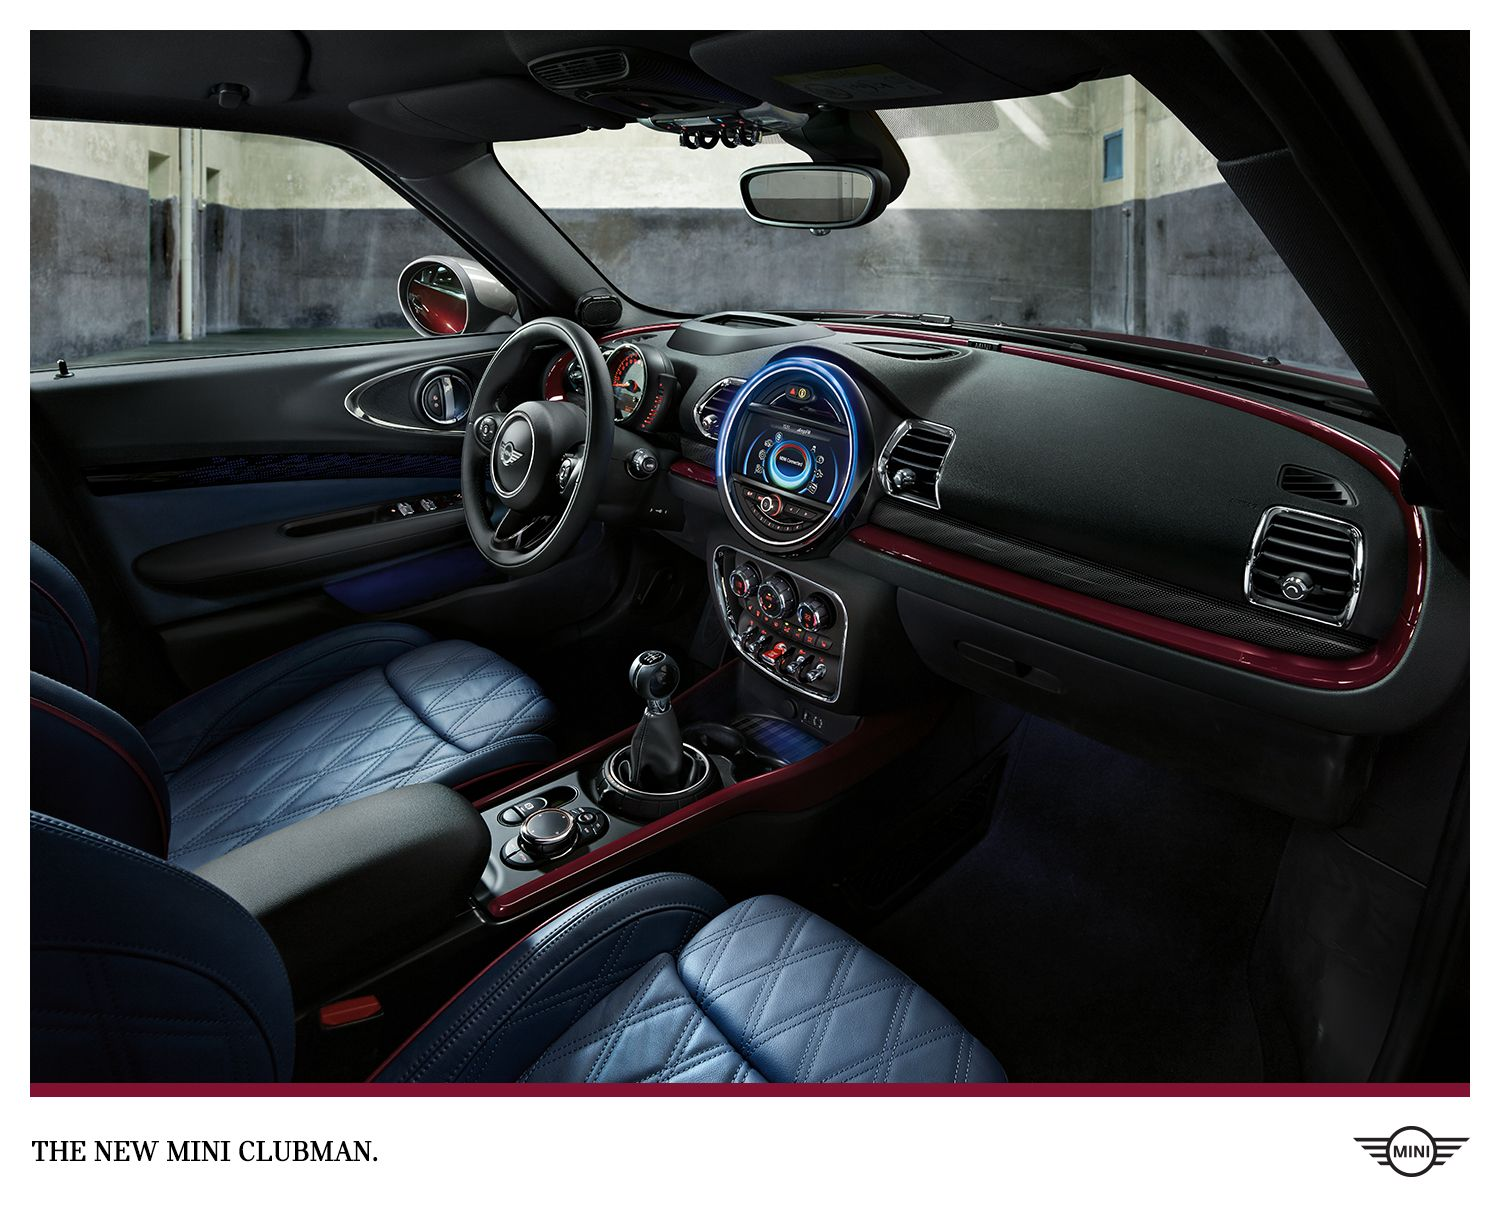 The Mini Clubman S Redesigned Interior Features Five New High End Upholstery Options